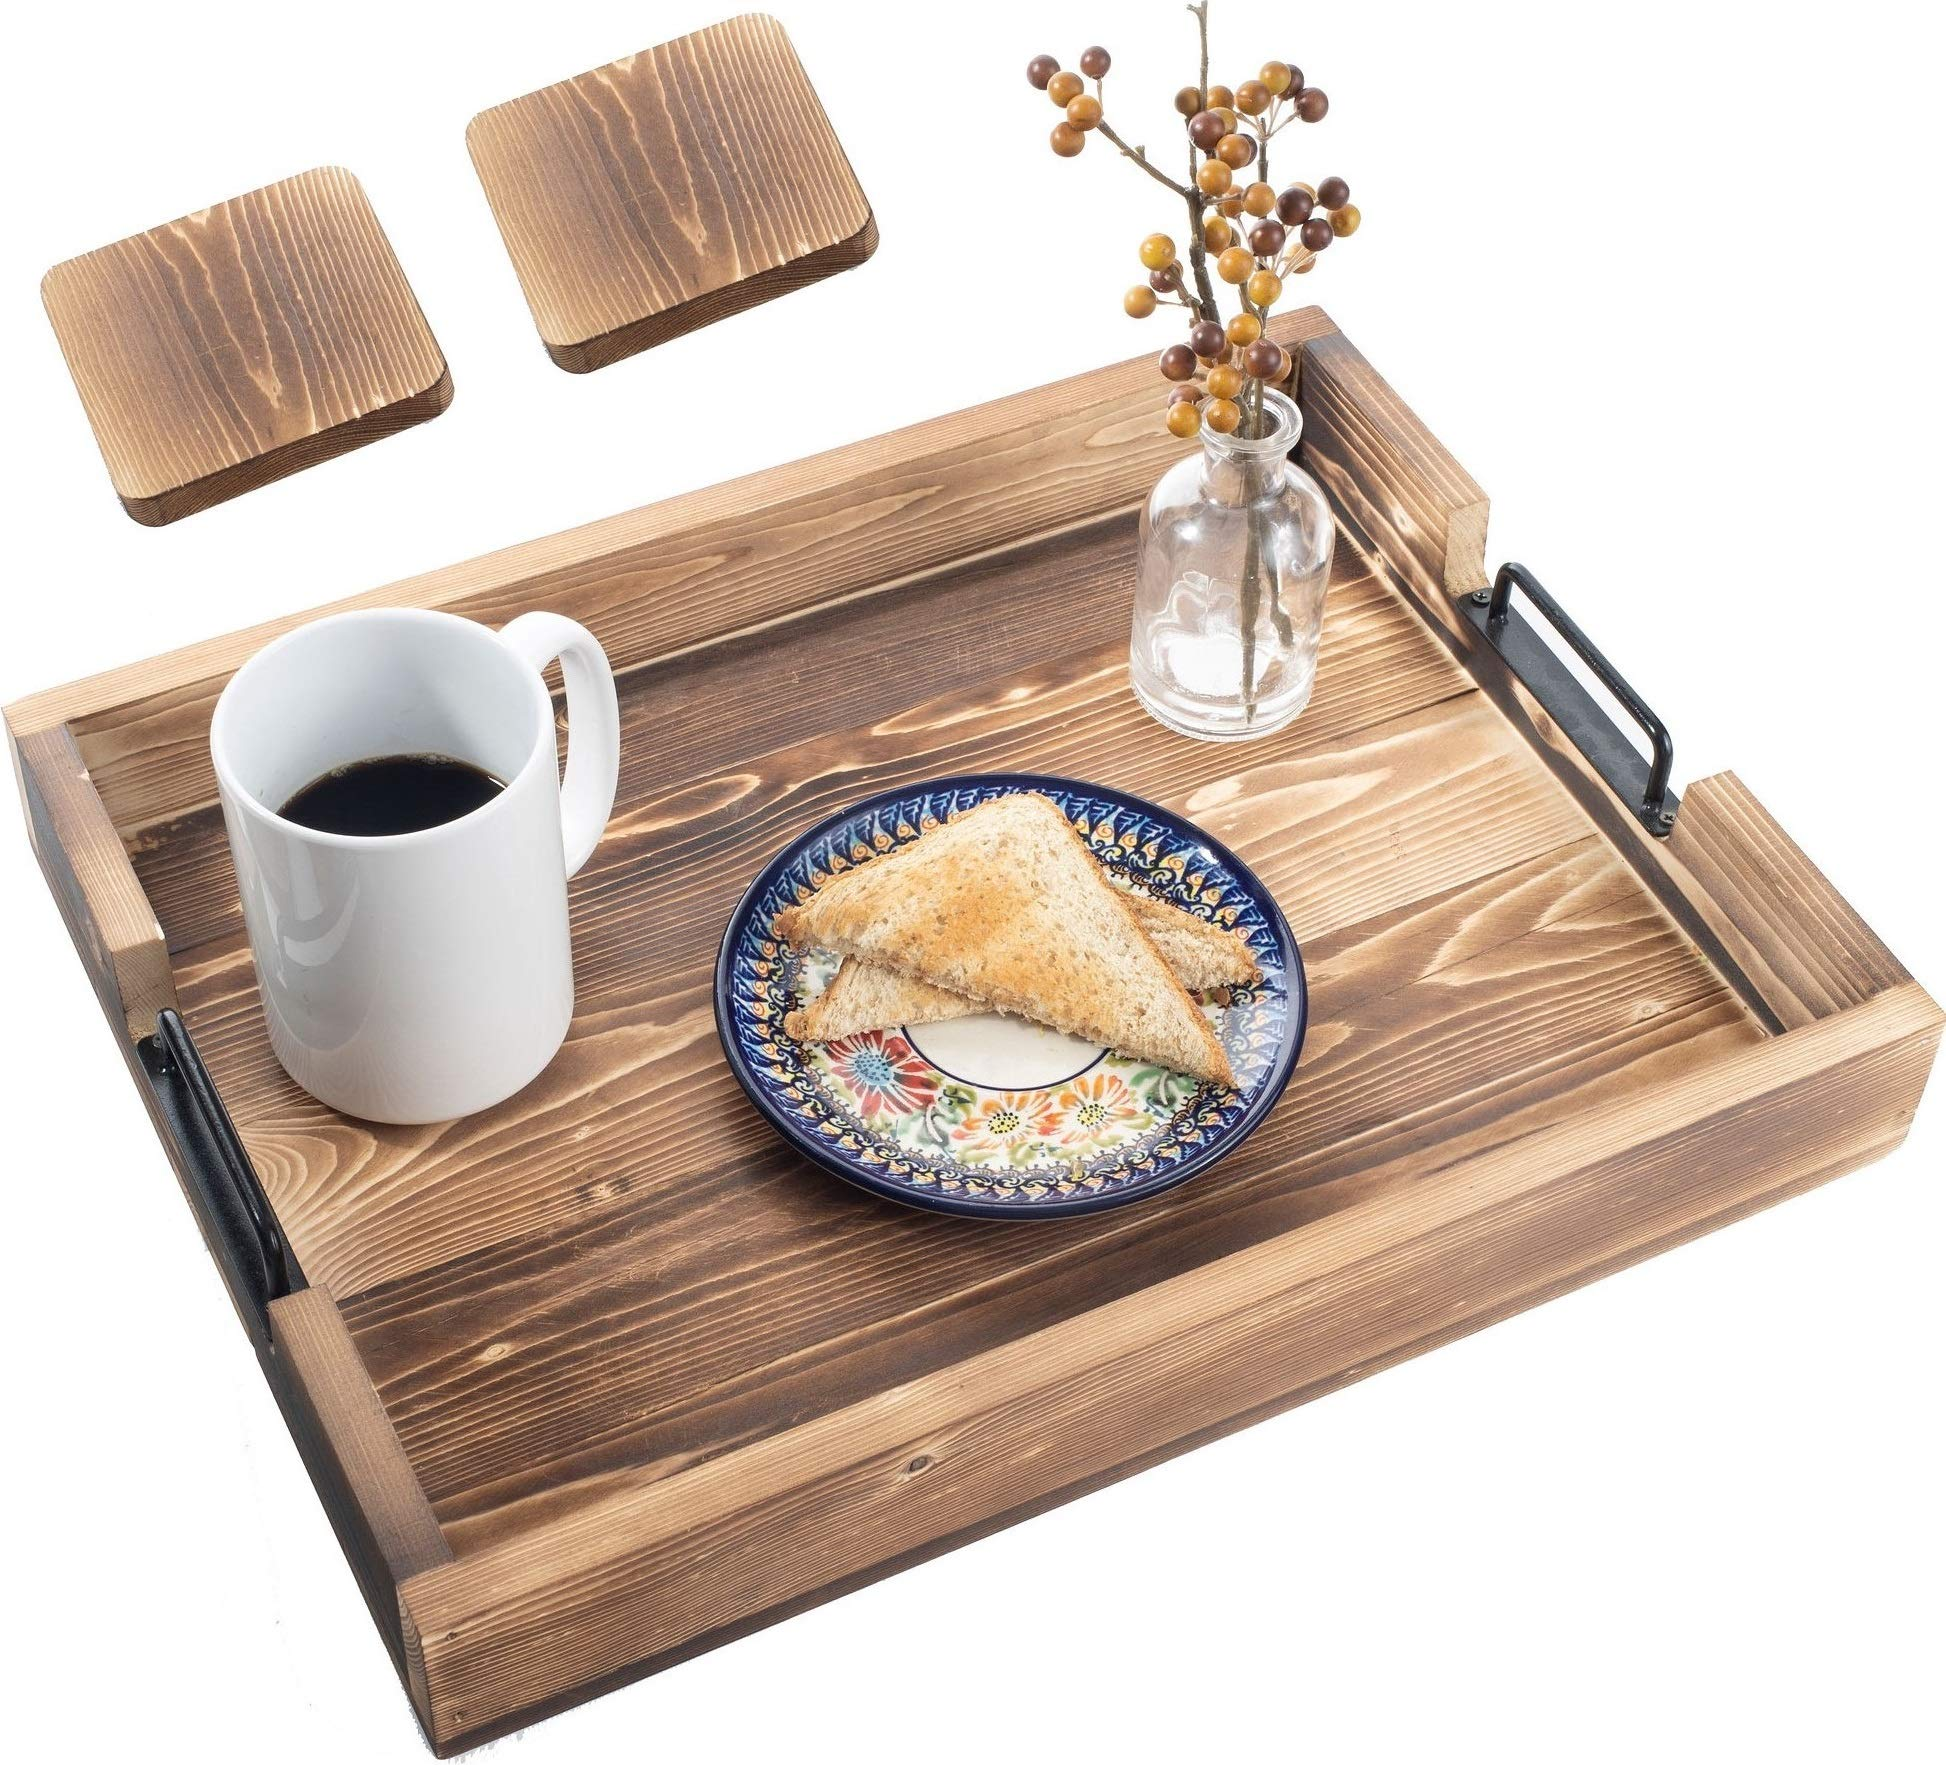 - Amazon.com Premium Home Serving Tray: Large Food Serving Tray With  Handles, Ottoman Tray, Decorative Tray For Coffee Table, Wooden Tray,  Serving Trays For Ottomans, Coffee Tray, Rustic Table Couch Breakfast Tray: